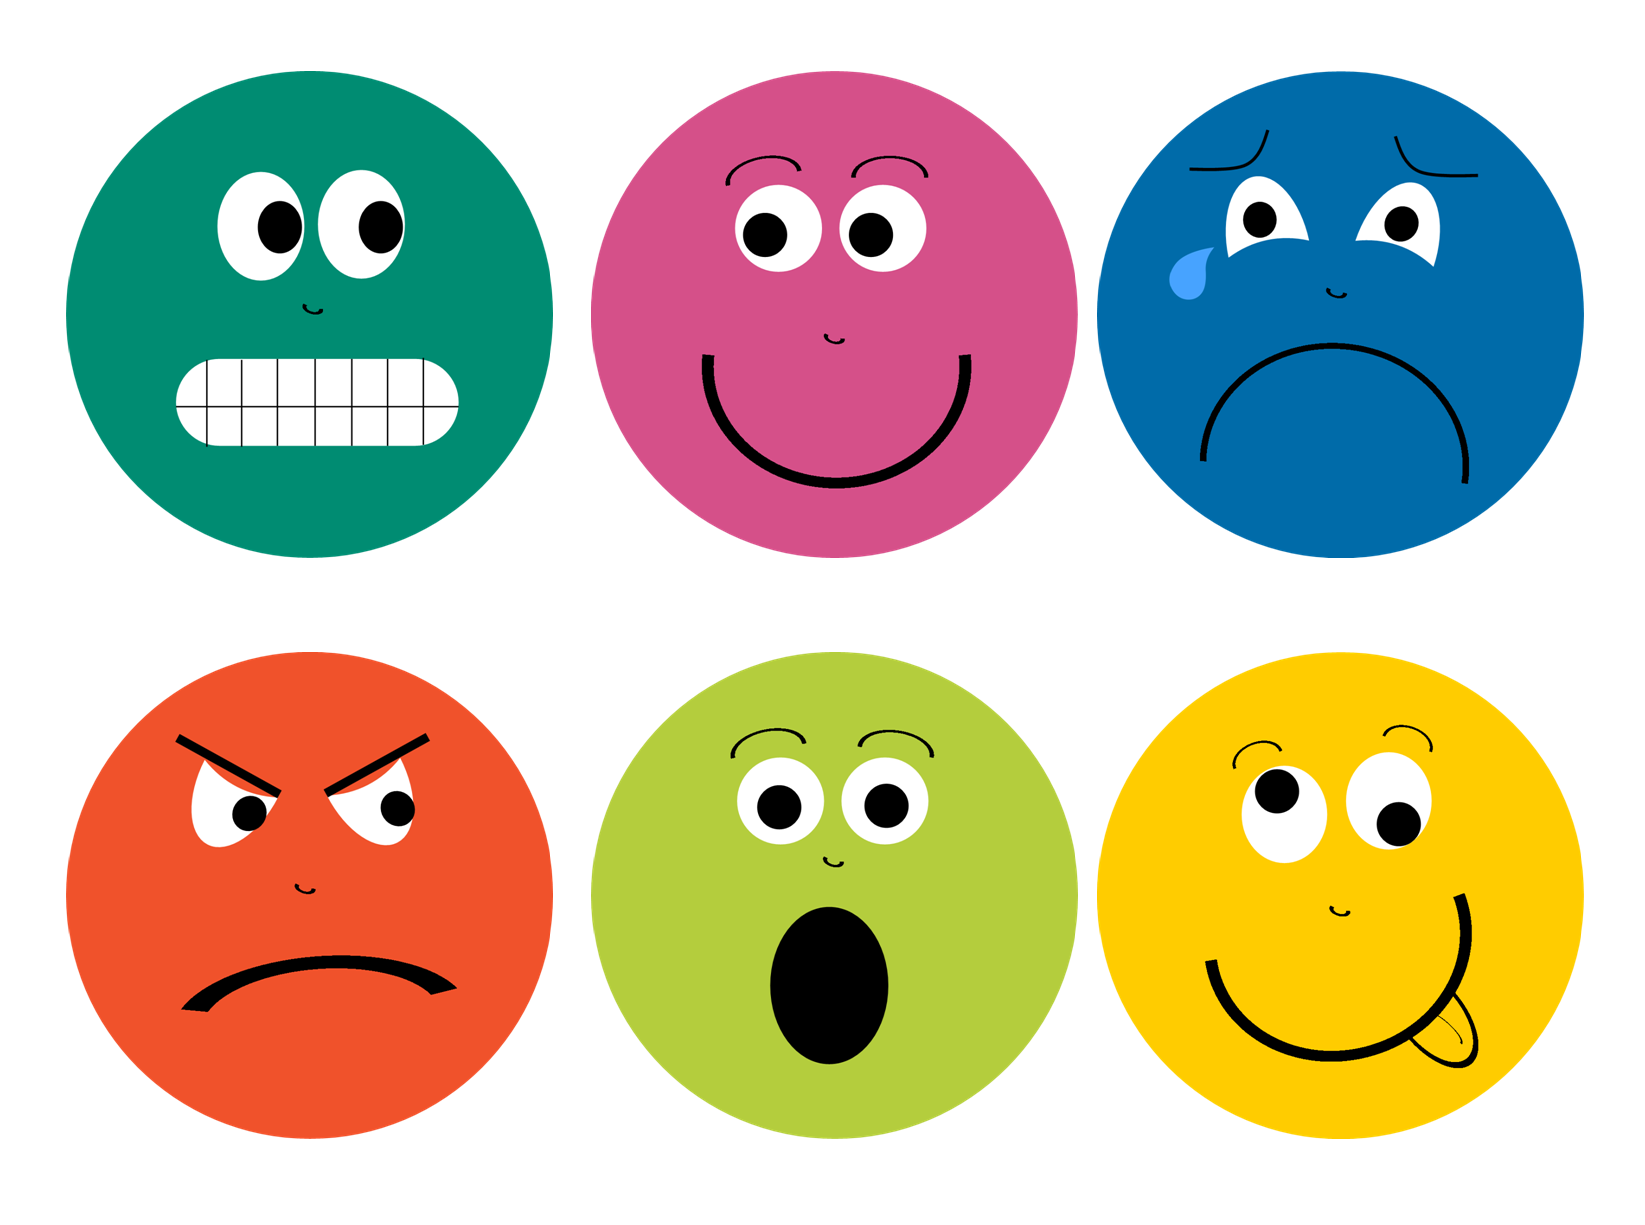 photograph regarding Free Printable Emotion Faces identify Emotions Faces Printable Library Inner thoughts preschool